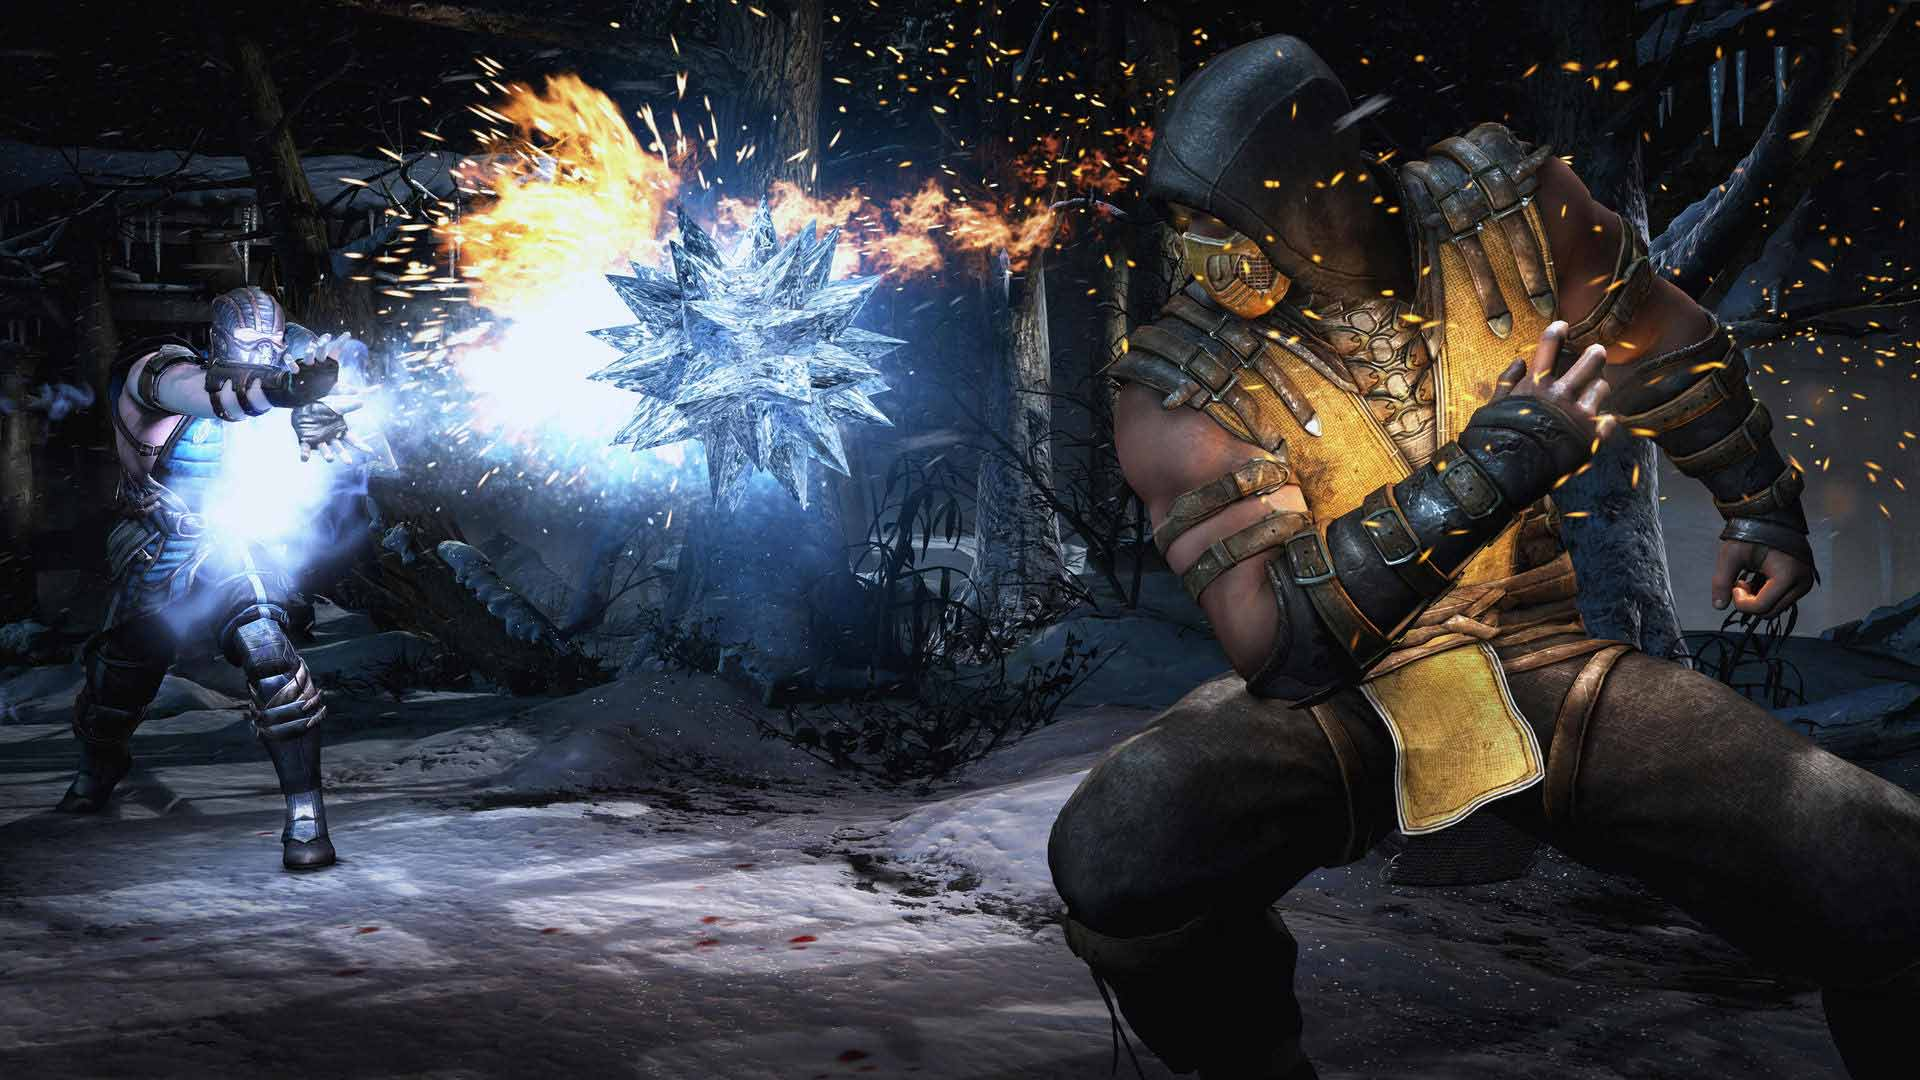 Mortal_Kombat_X_gameli-11f